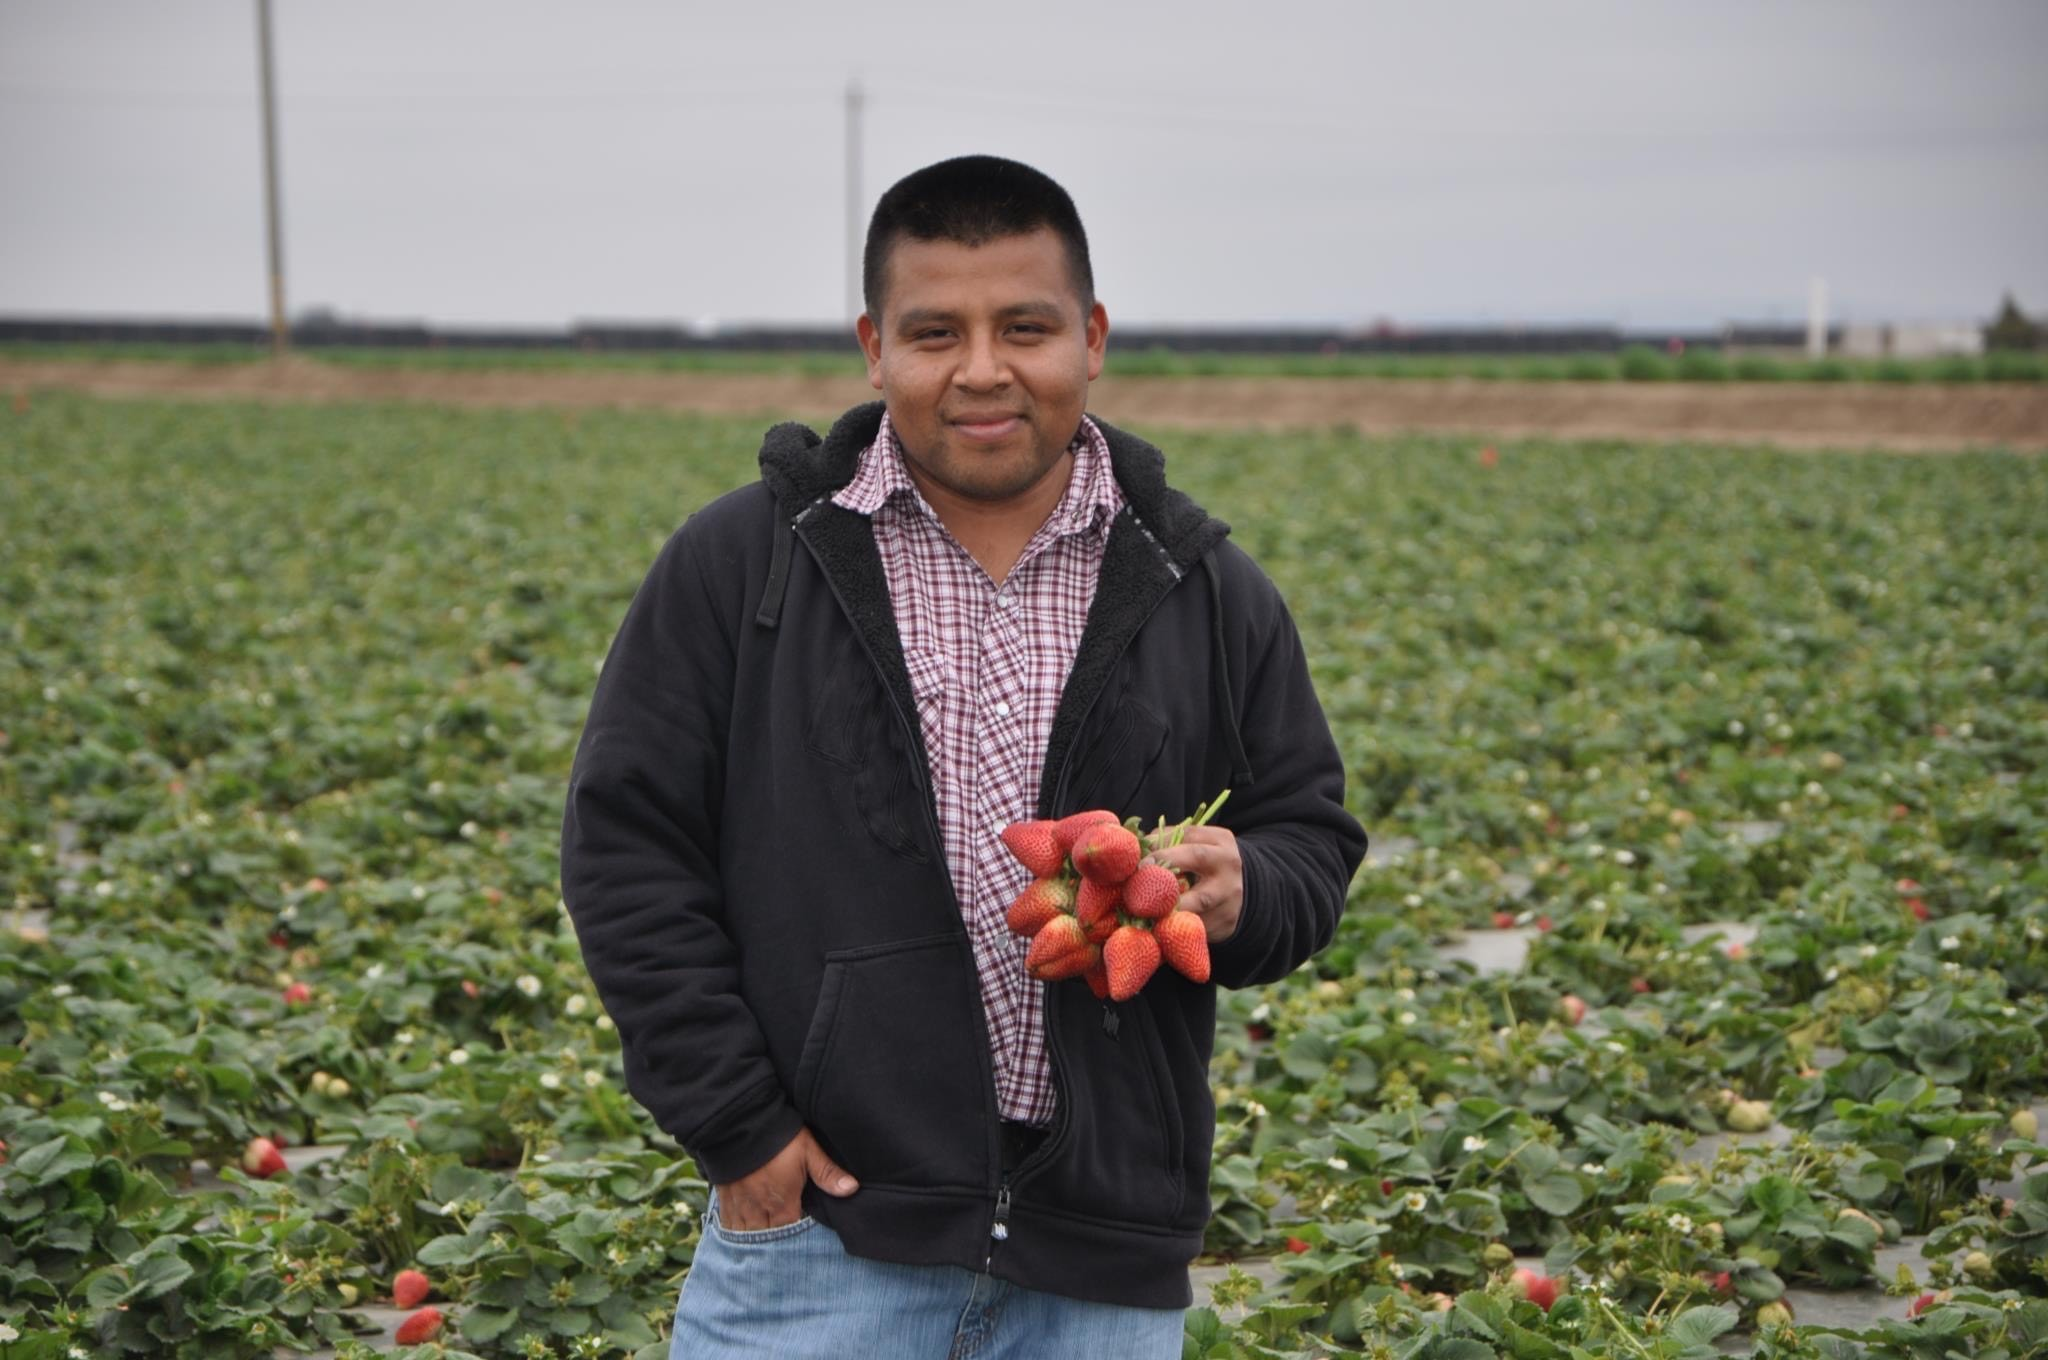 Man holding strawberries standing in strawberry field